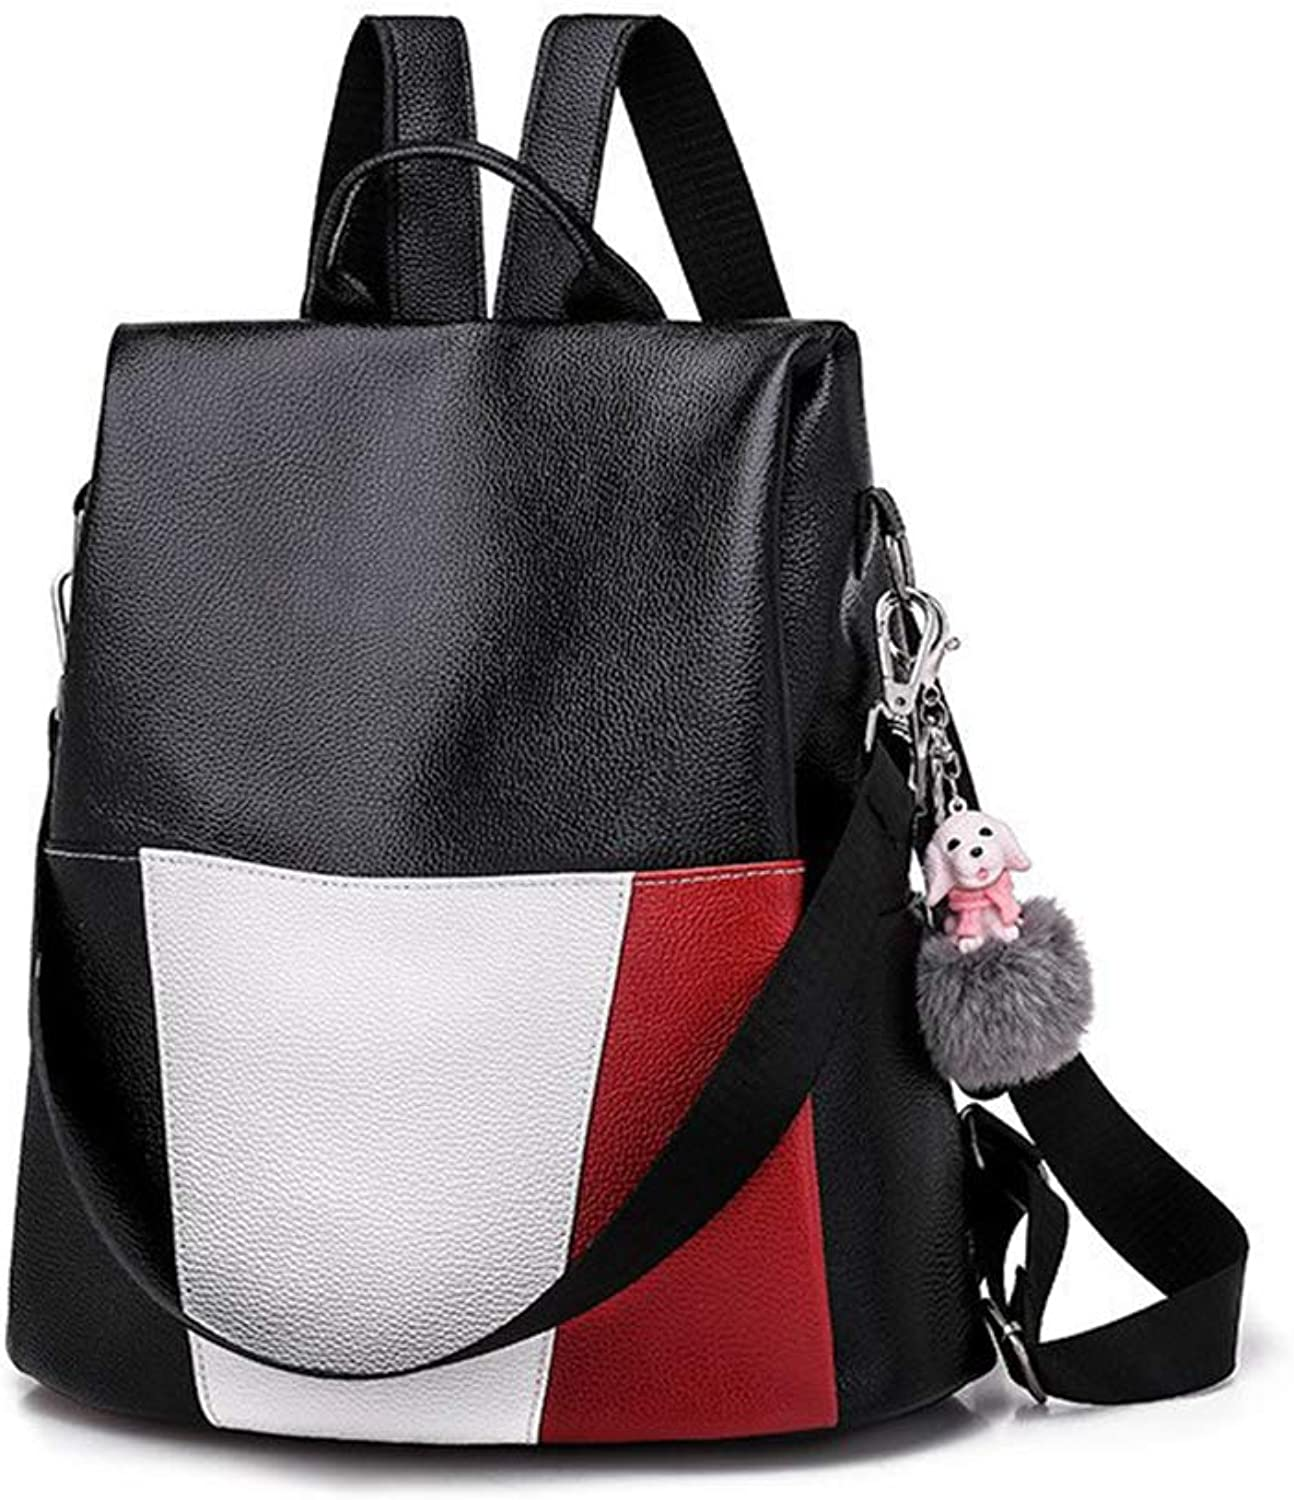 Soft Leather Backpack School College Travel Anti Theft Waterproof Outdoor Handy Fashion Leisure Girls Women Bag